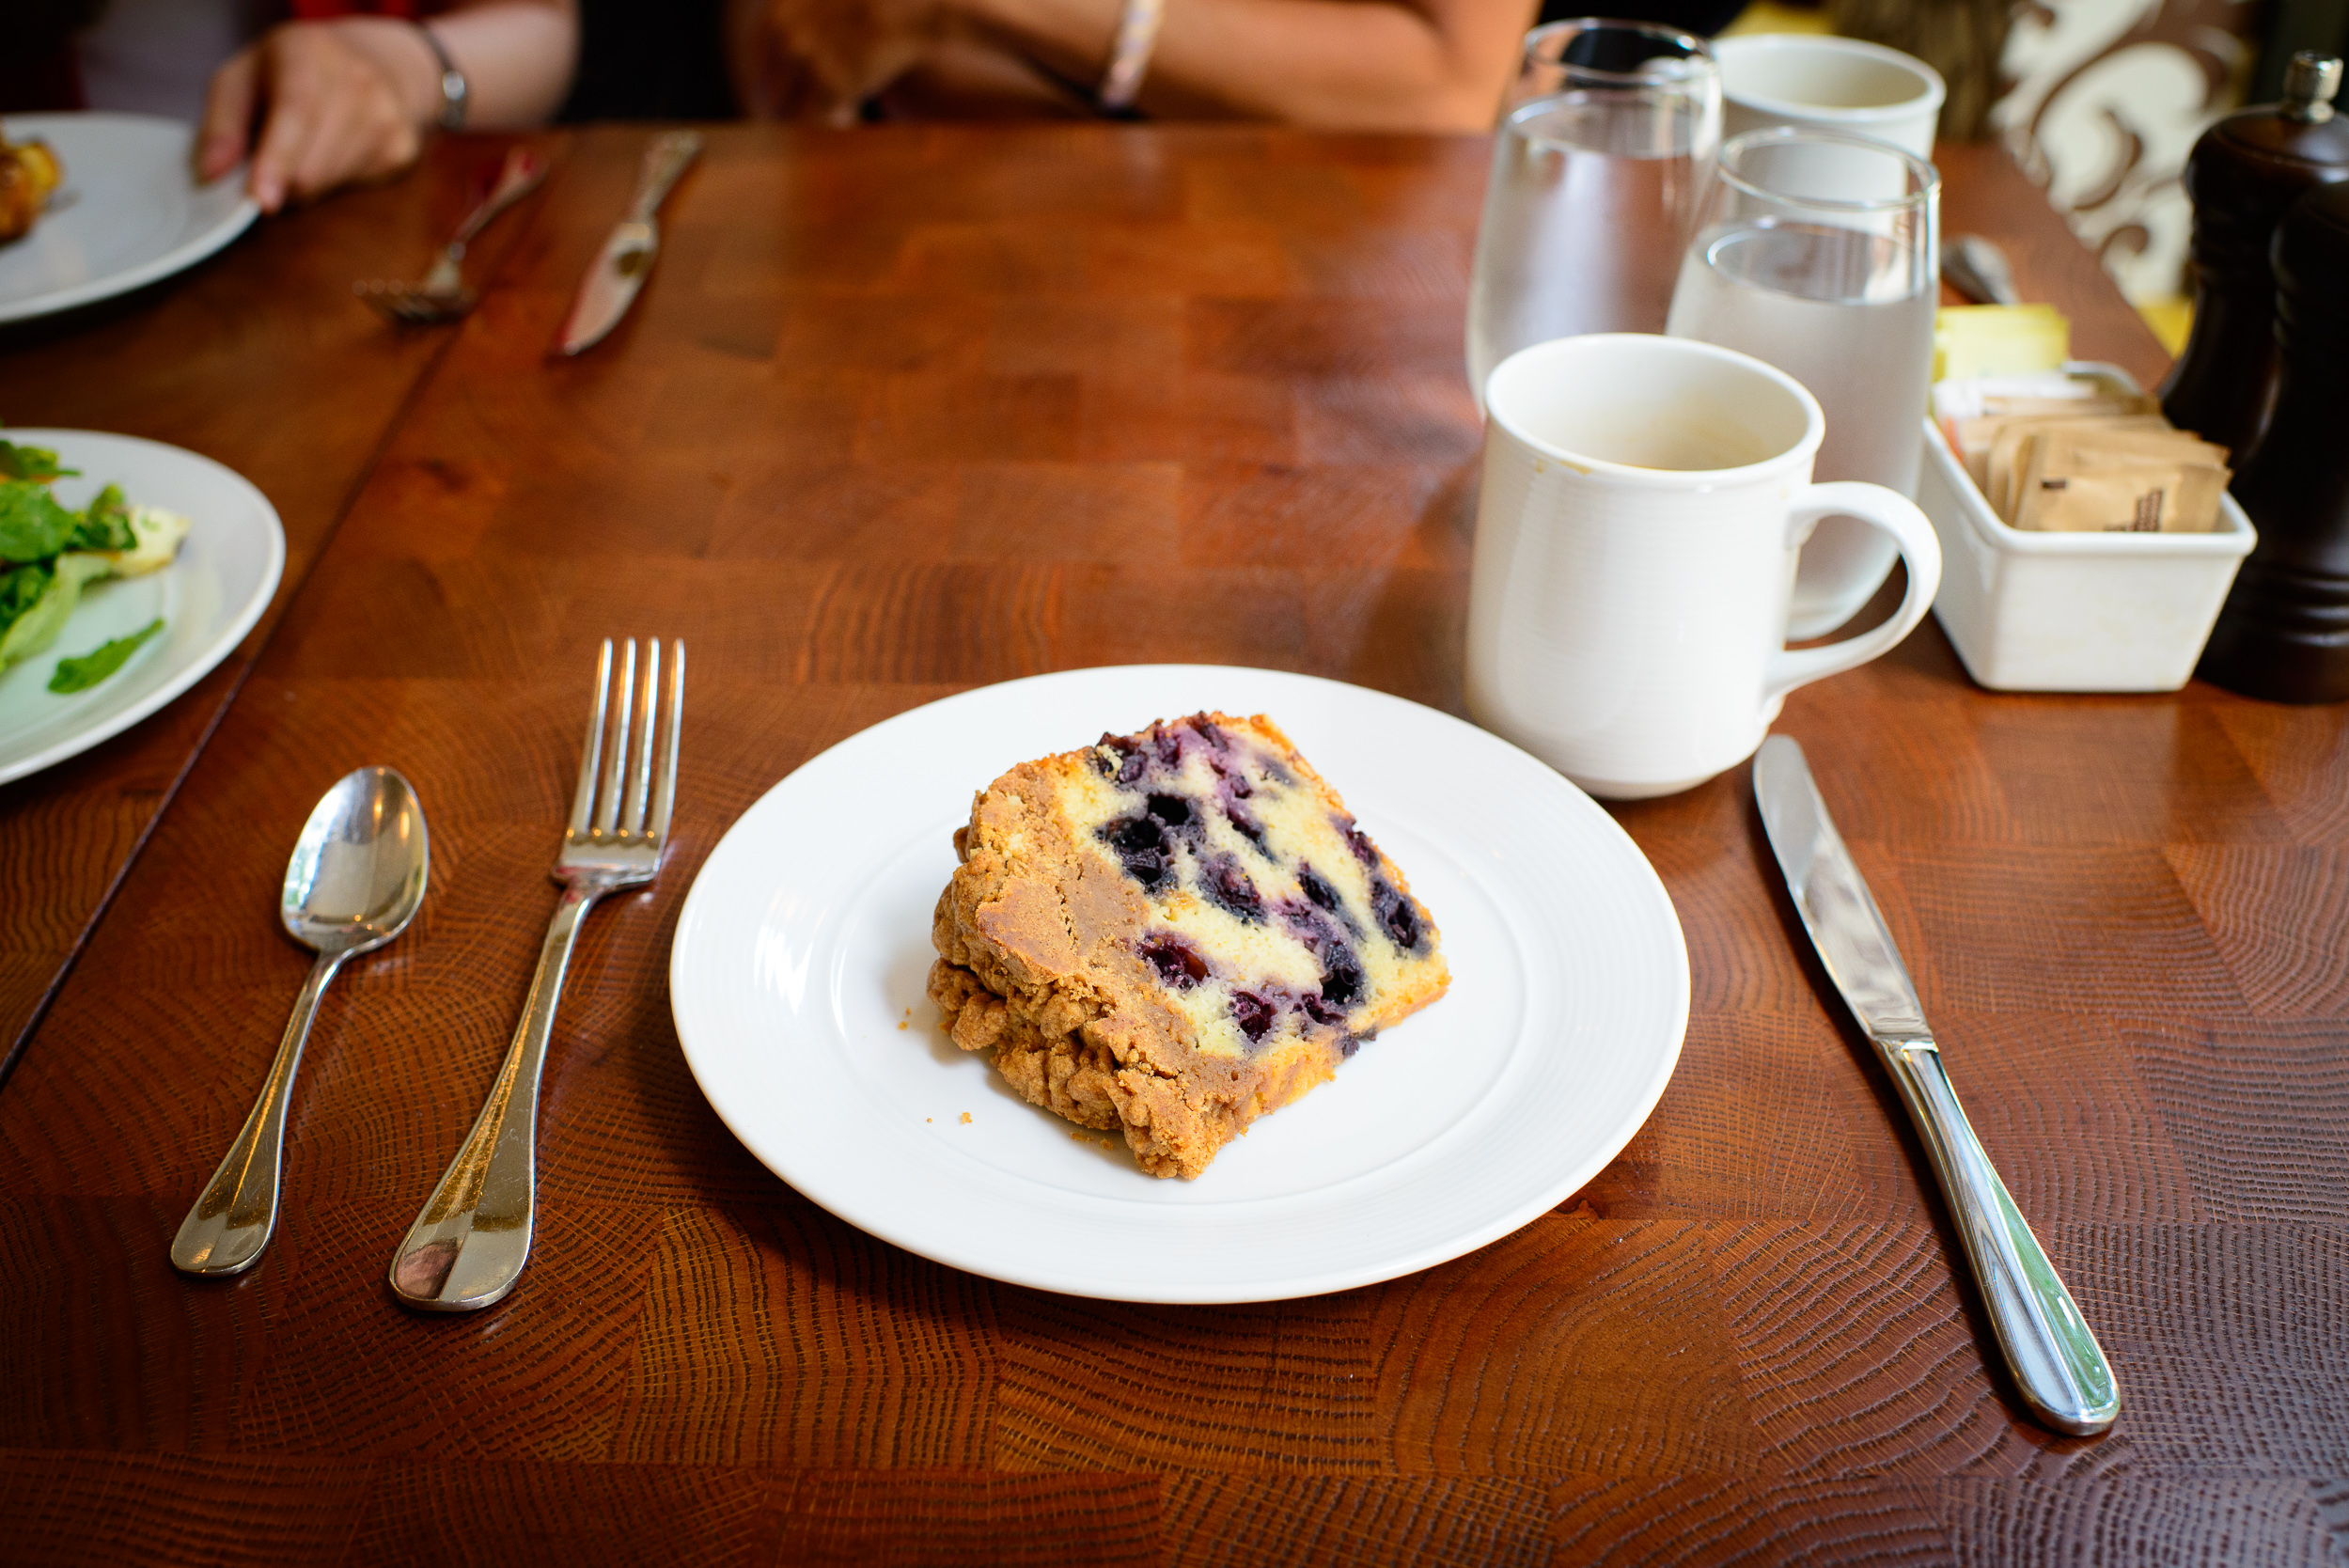 Blueberry coffee cake ($3)